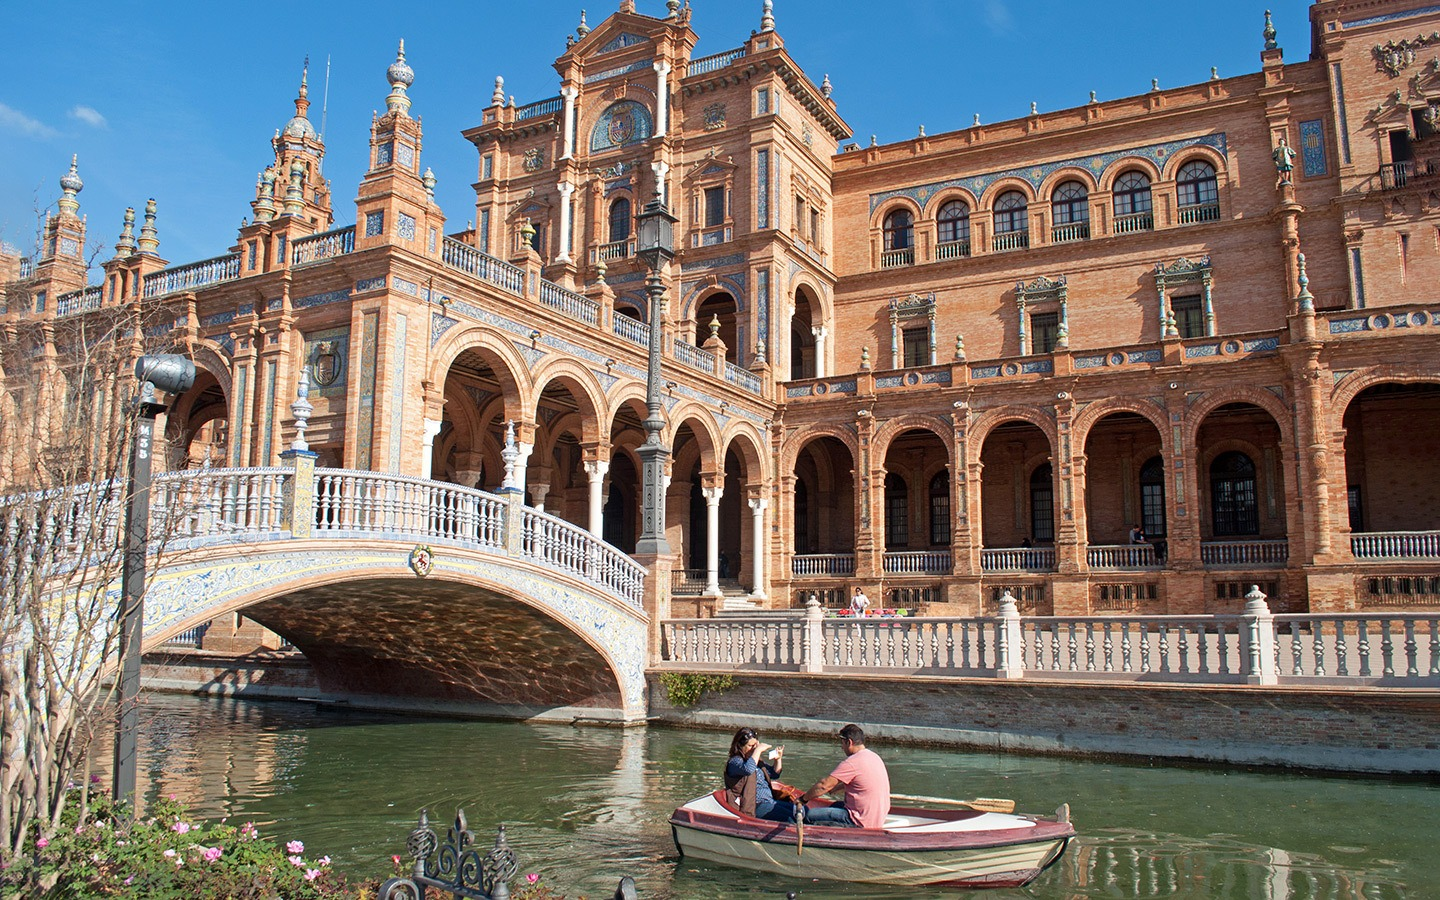 Boat in the moat of the Plaza de España